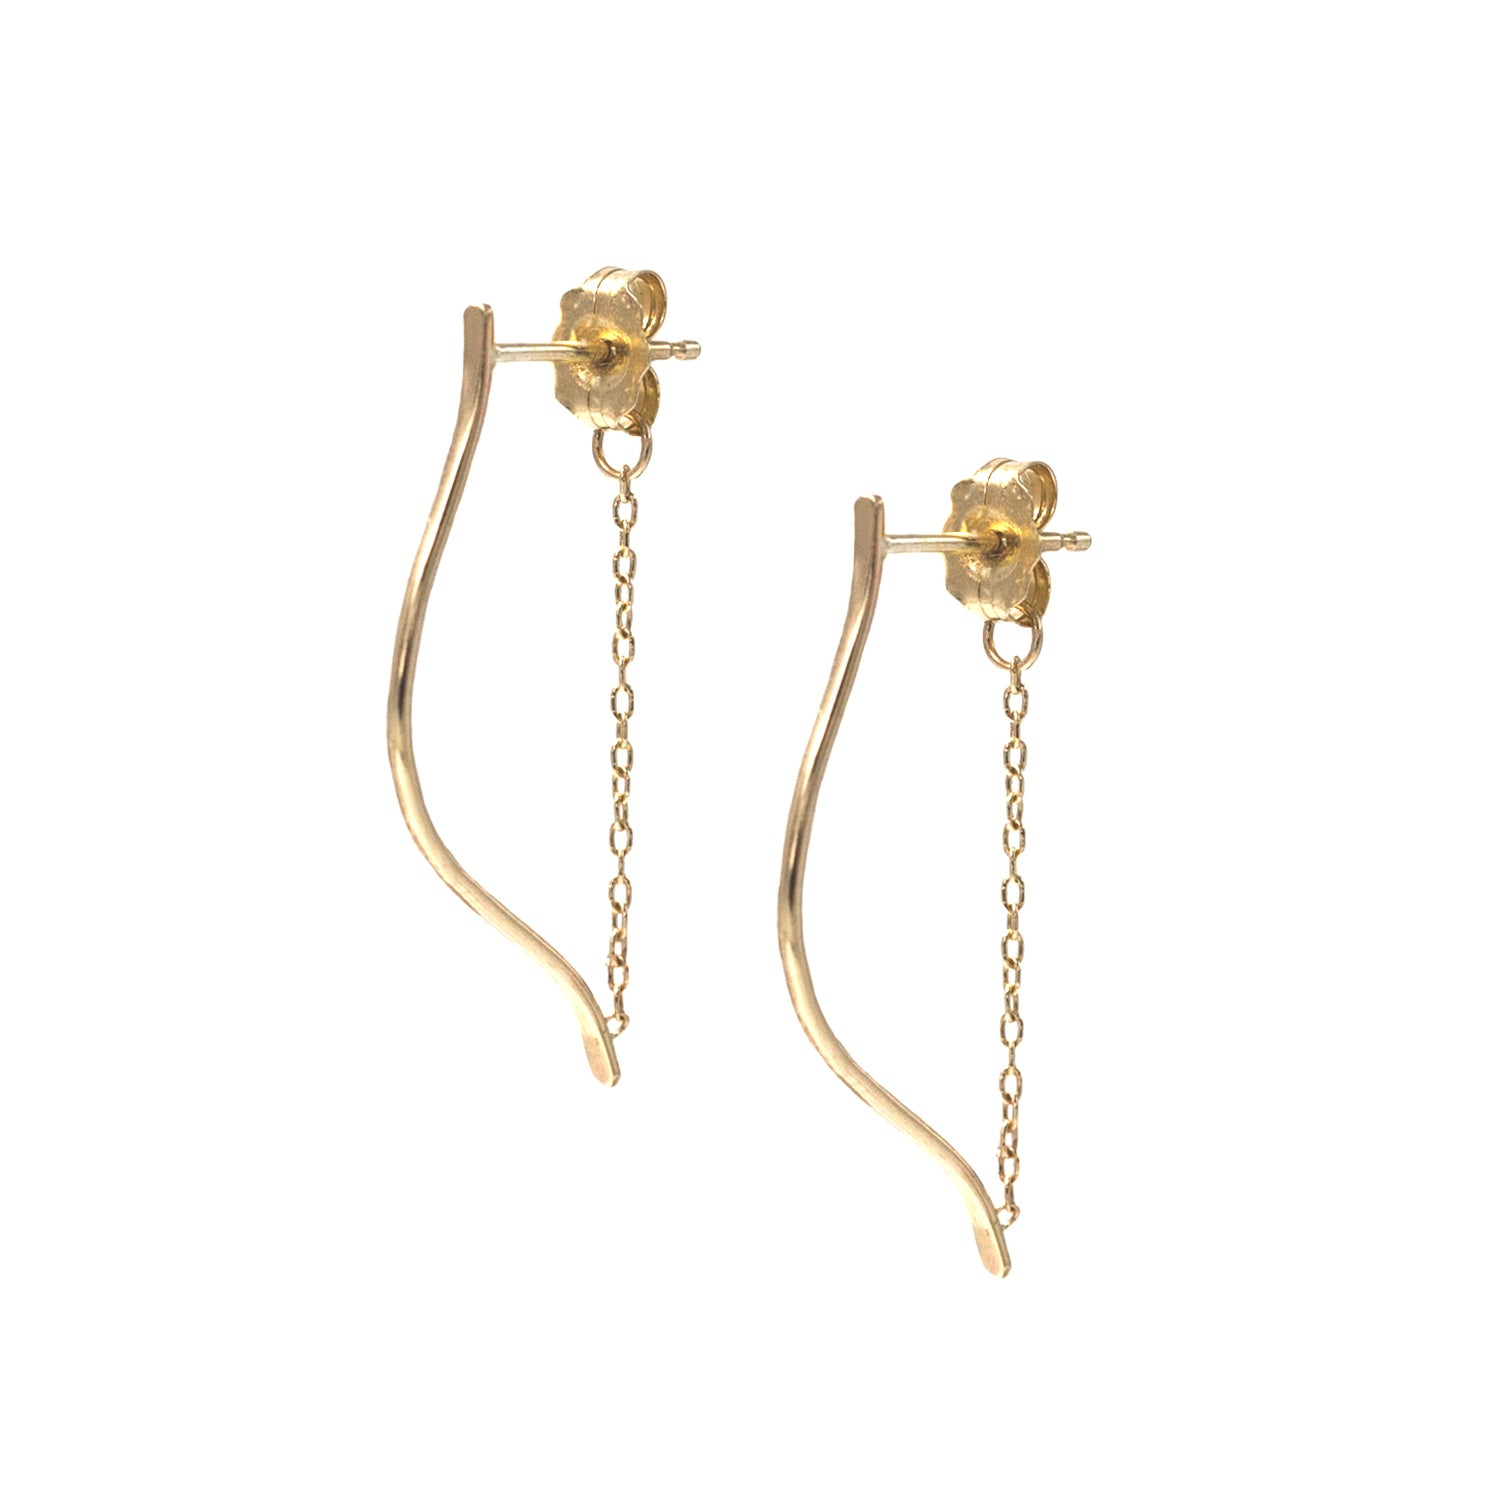 Image of MEDIUM ARTEMIS EARRINGS 14K